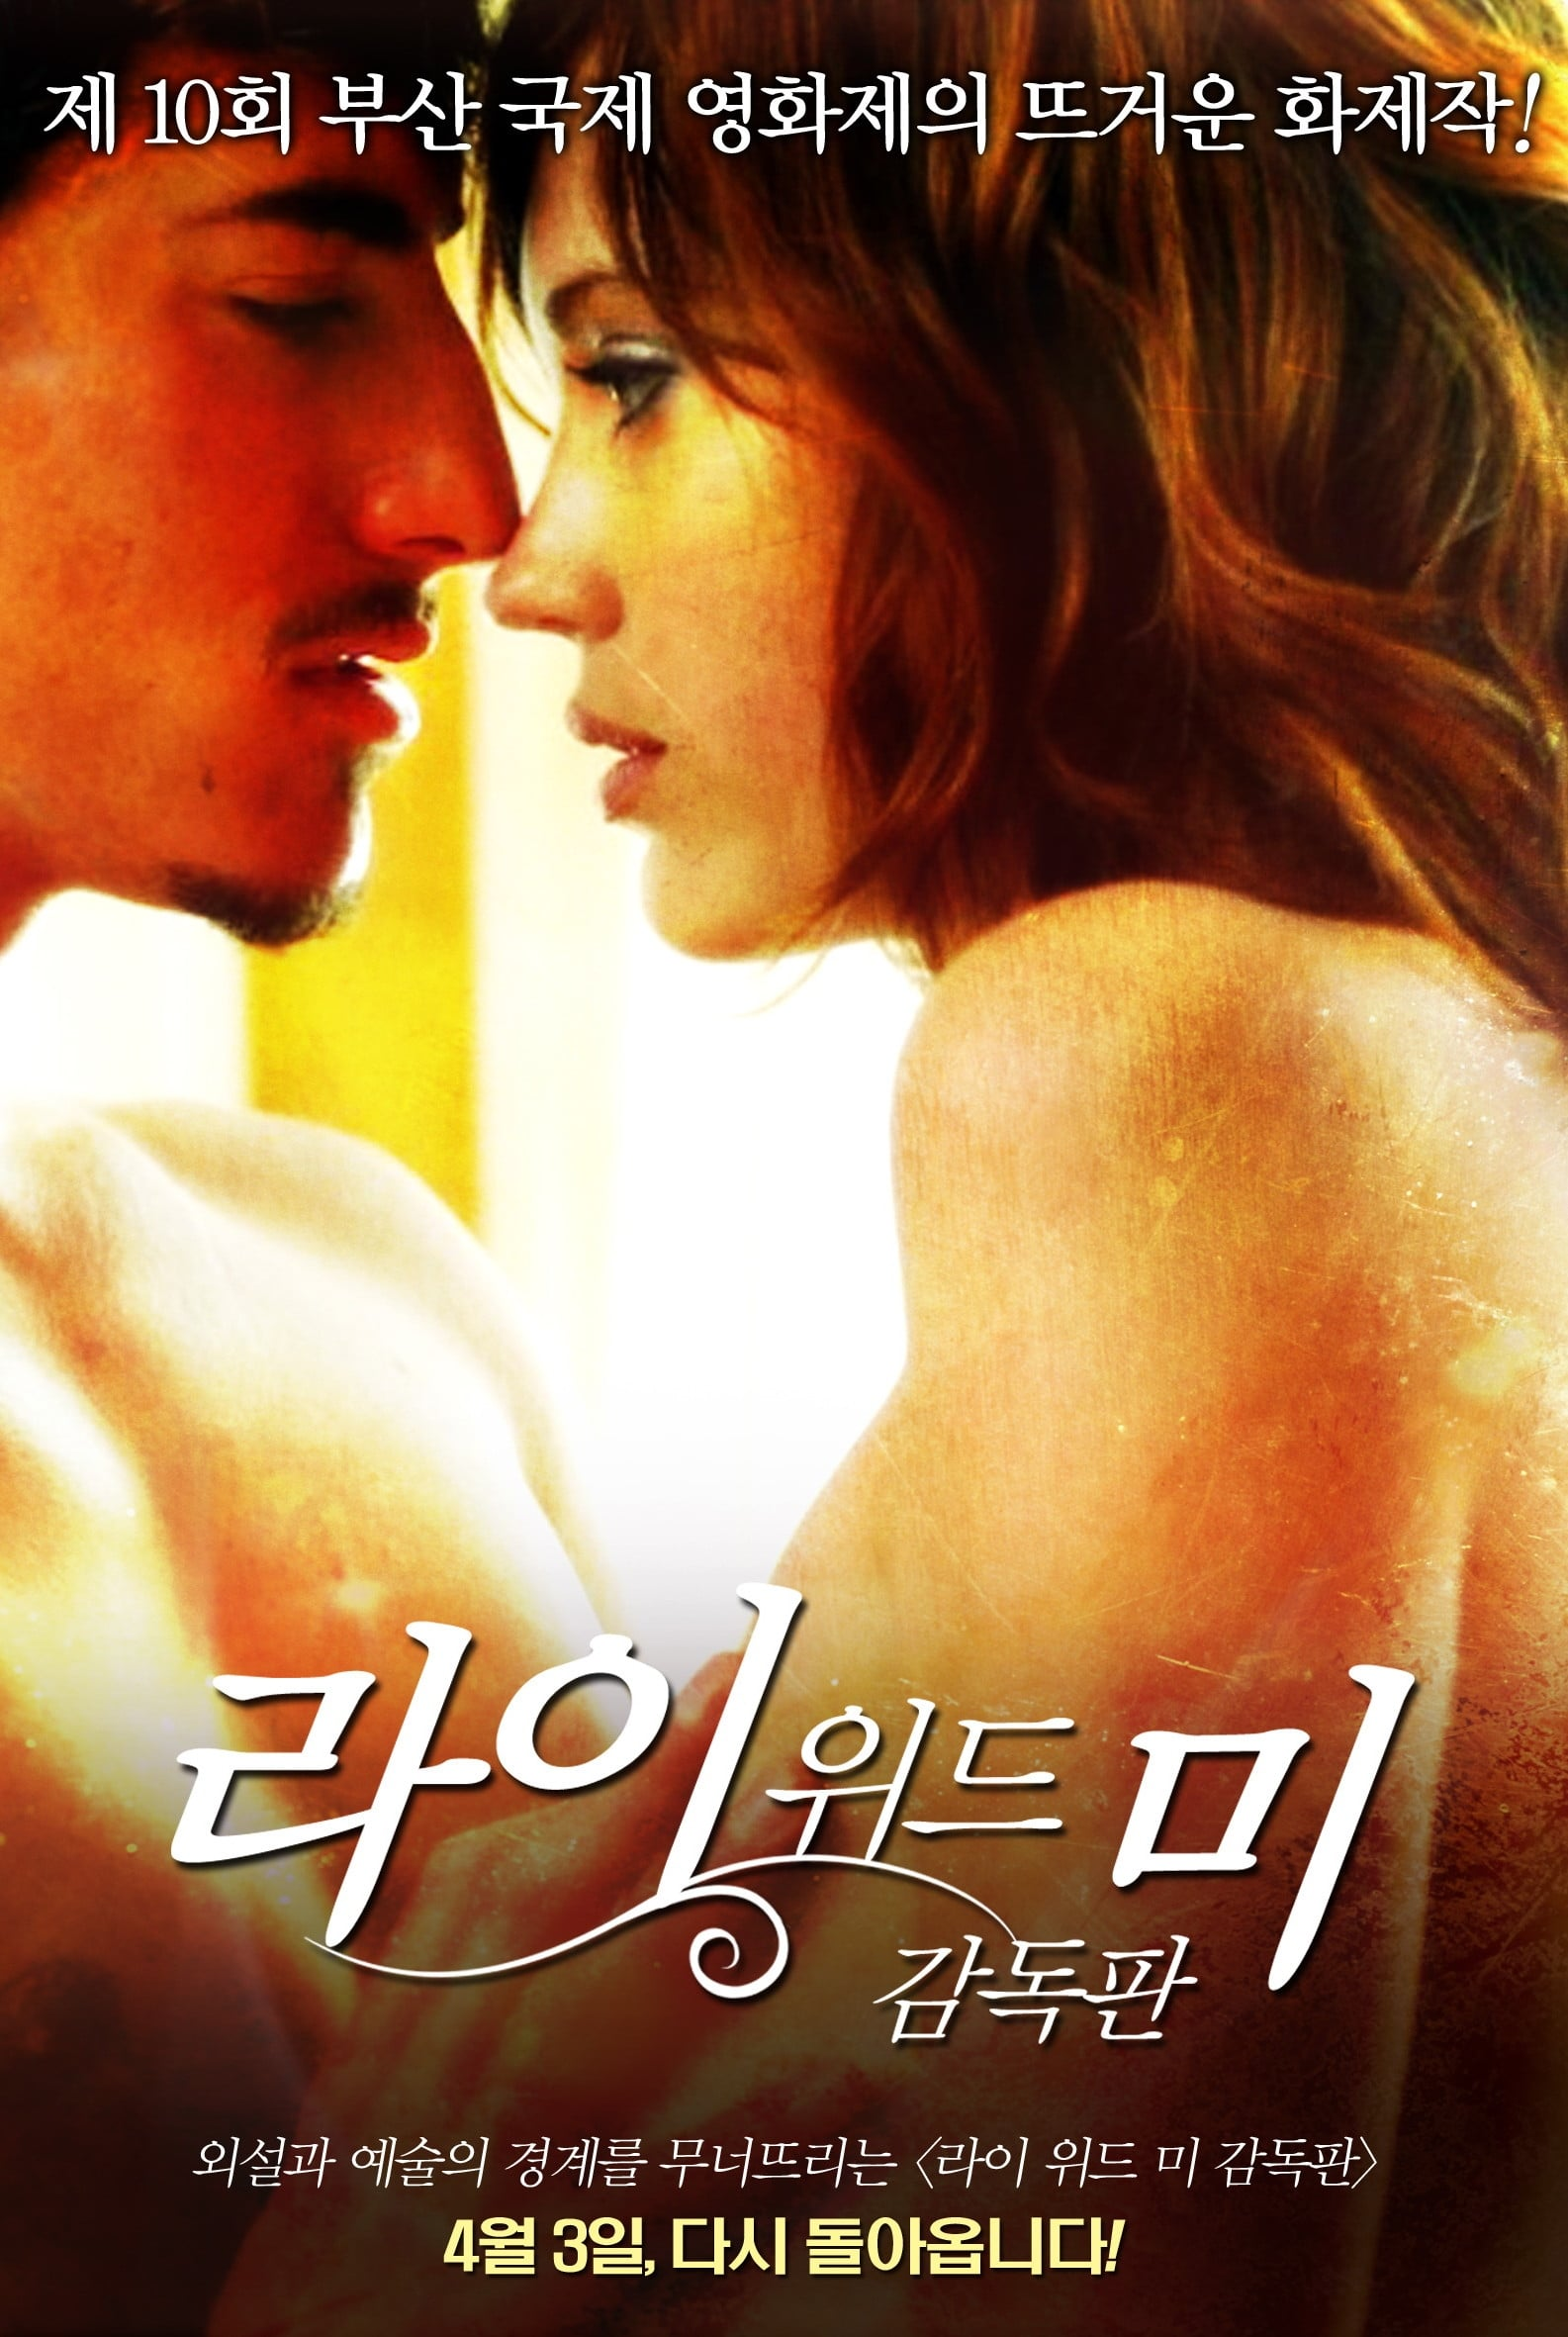 Watch Lie with Me (2005) Full Movie Streaming Online